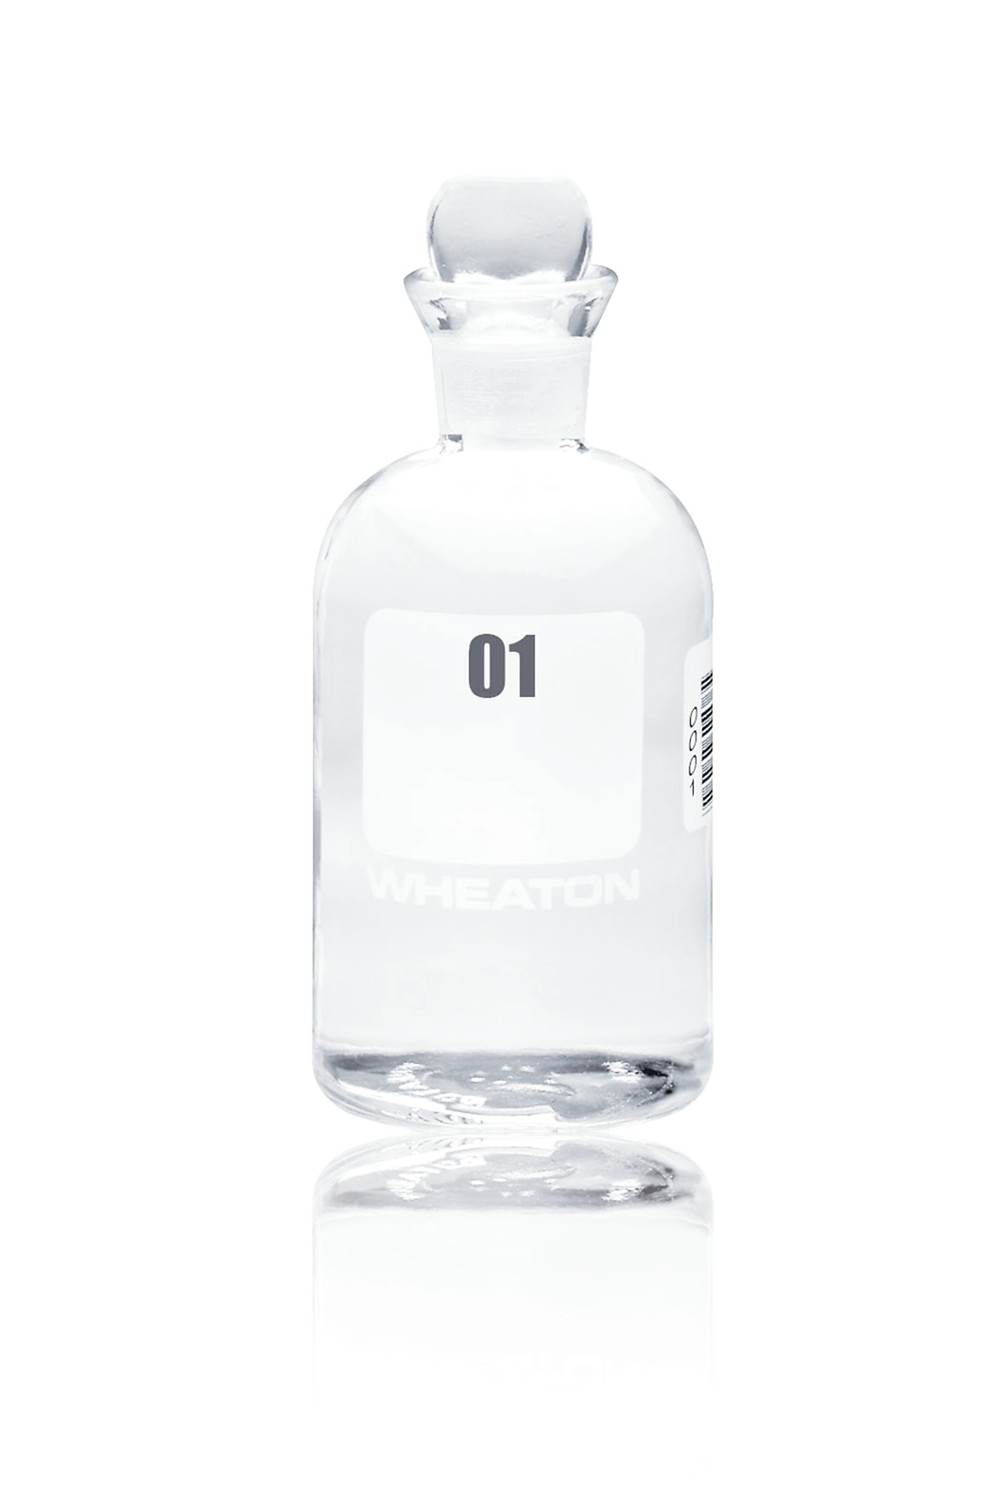 Wheaton BOD Bottle with Glass Pennyhead Stopper